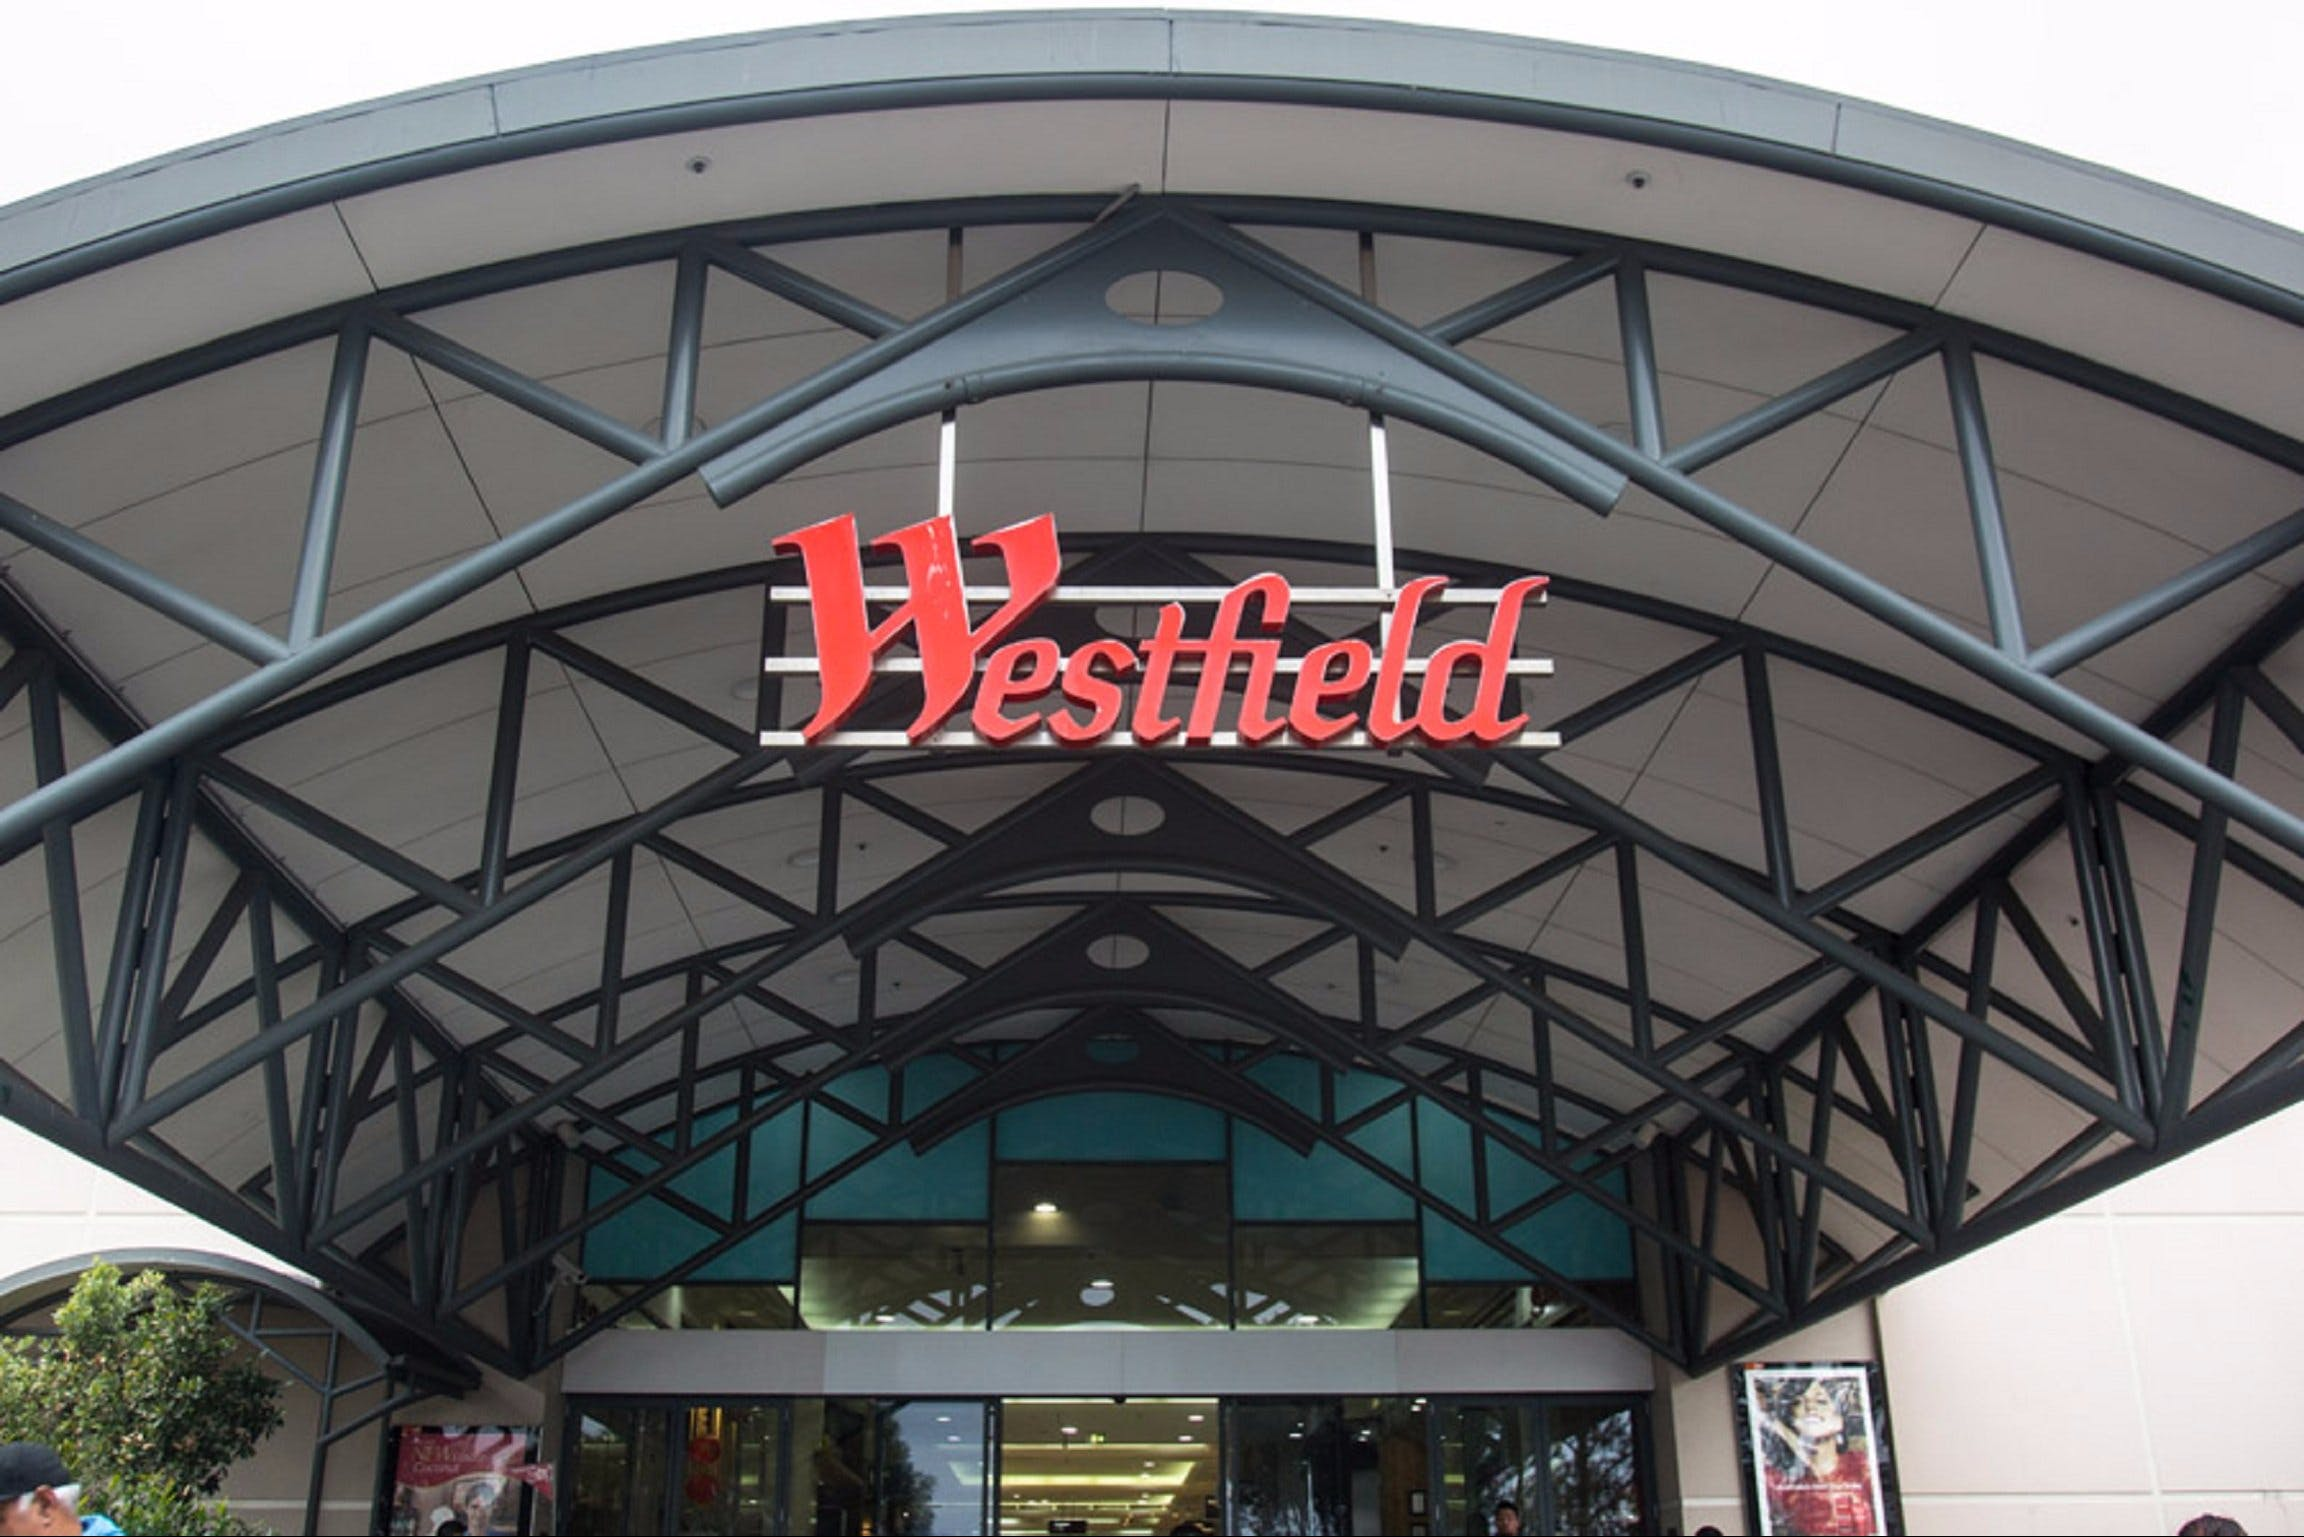 Westfield Shopping Centre Mount Druitt - Broome Tourism